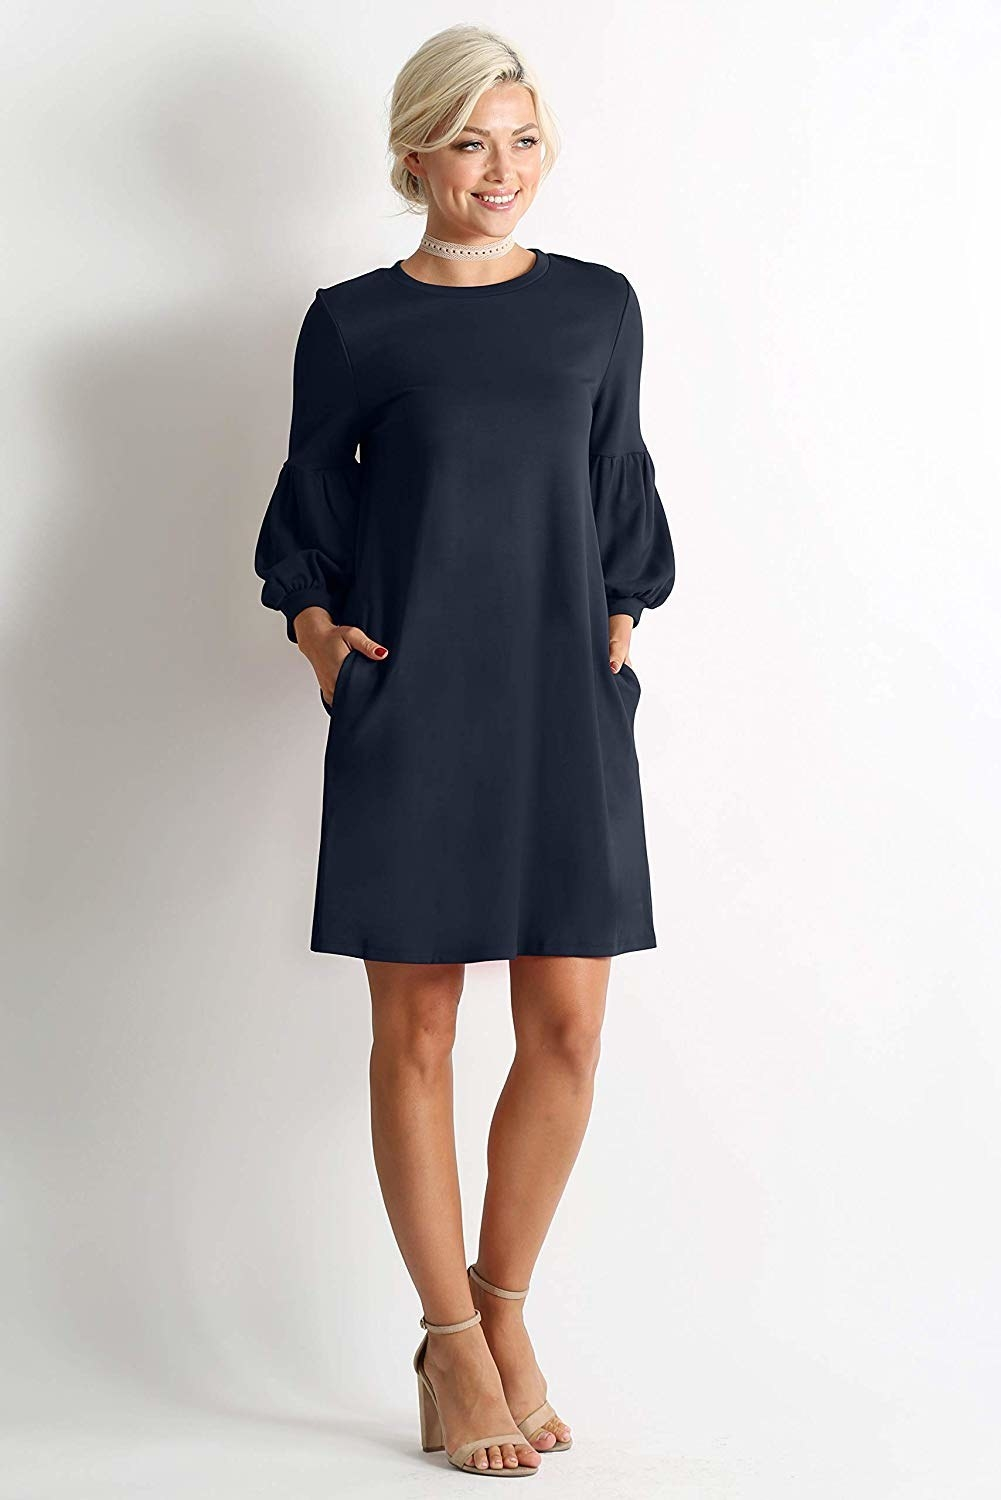 a92226b955d 28 VERY Cute Office-Appropriate Dresses To Wear On Your Next Date Night